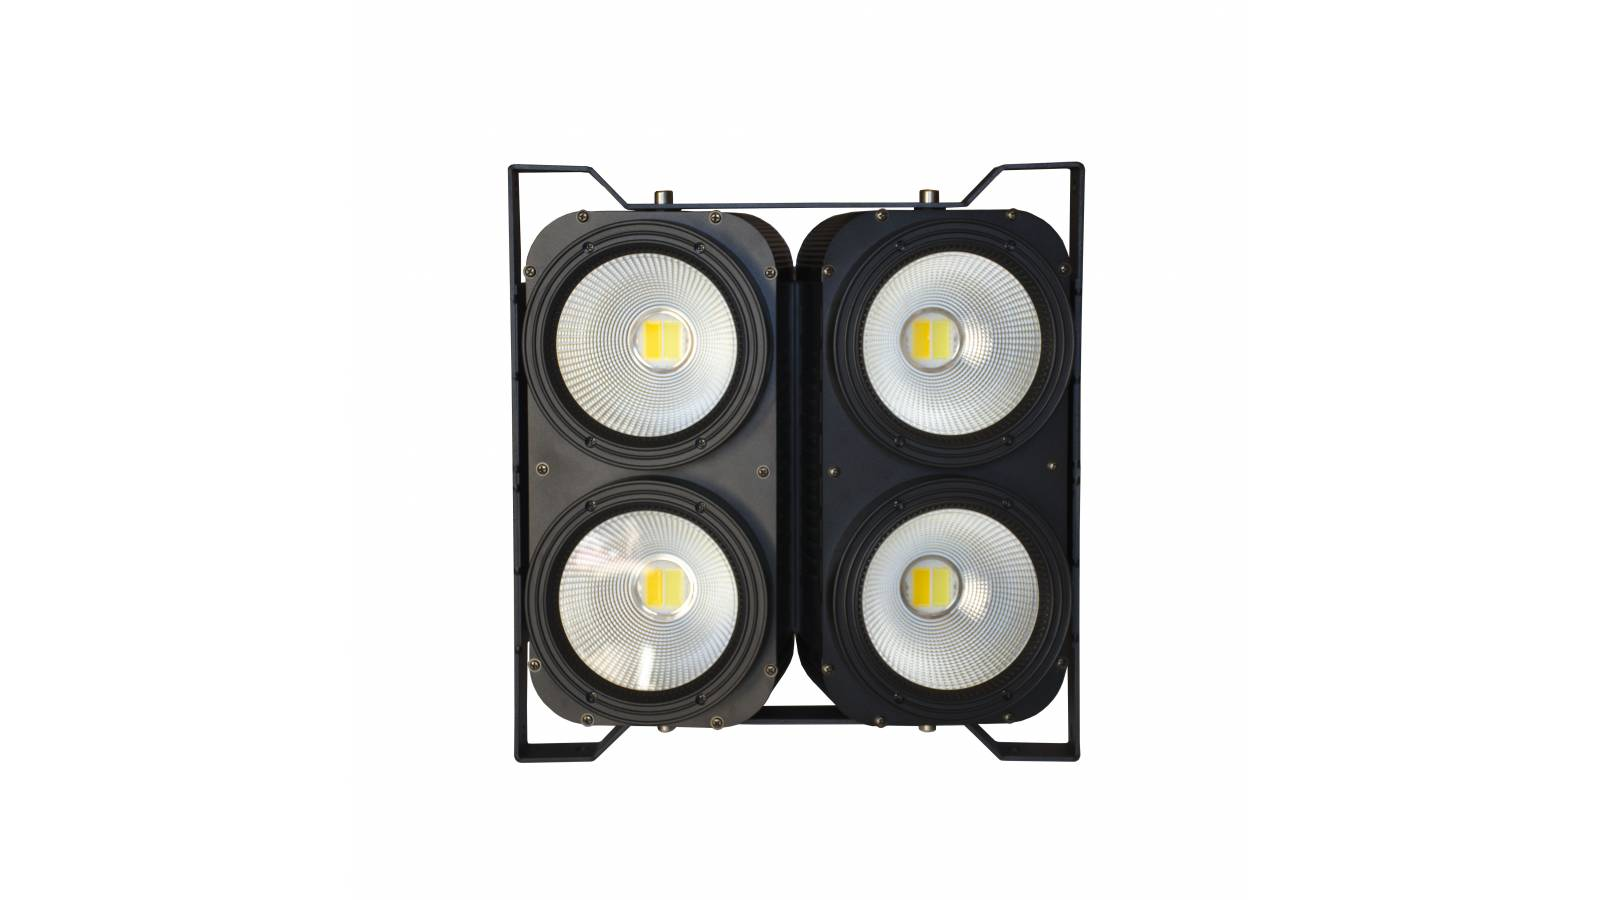 Blinder Cegador Mini Bruts LED 4x100W COB LED WW/CW